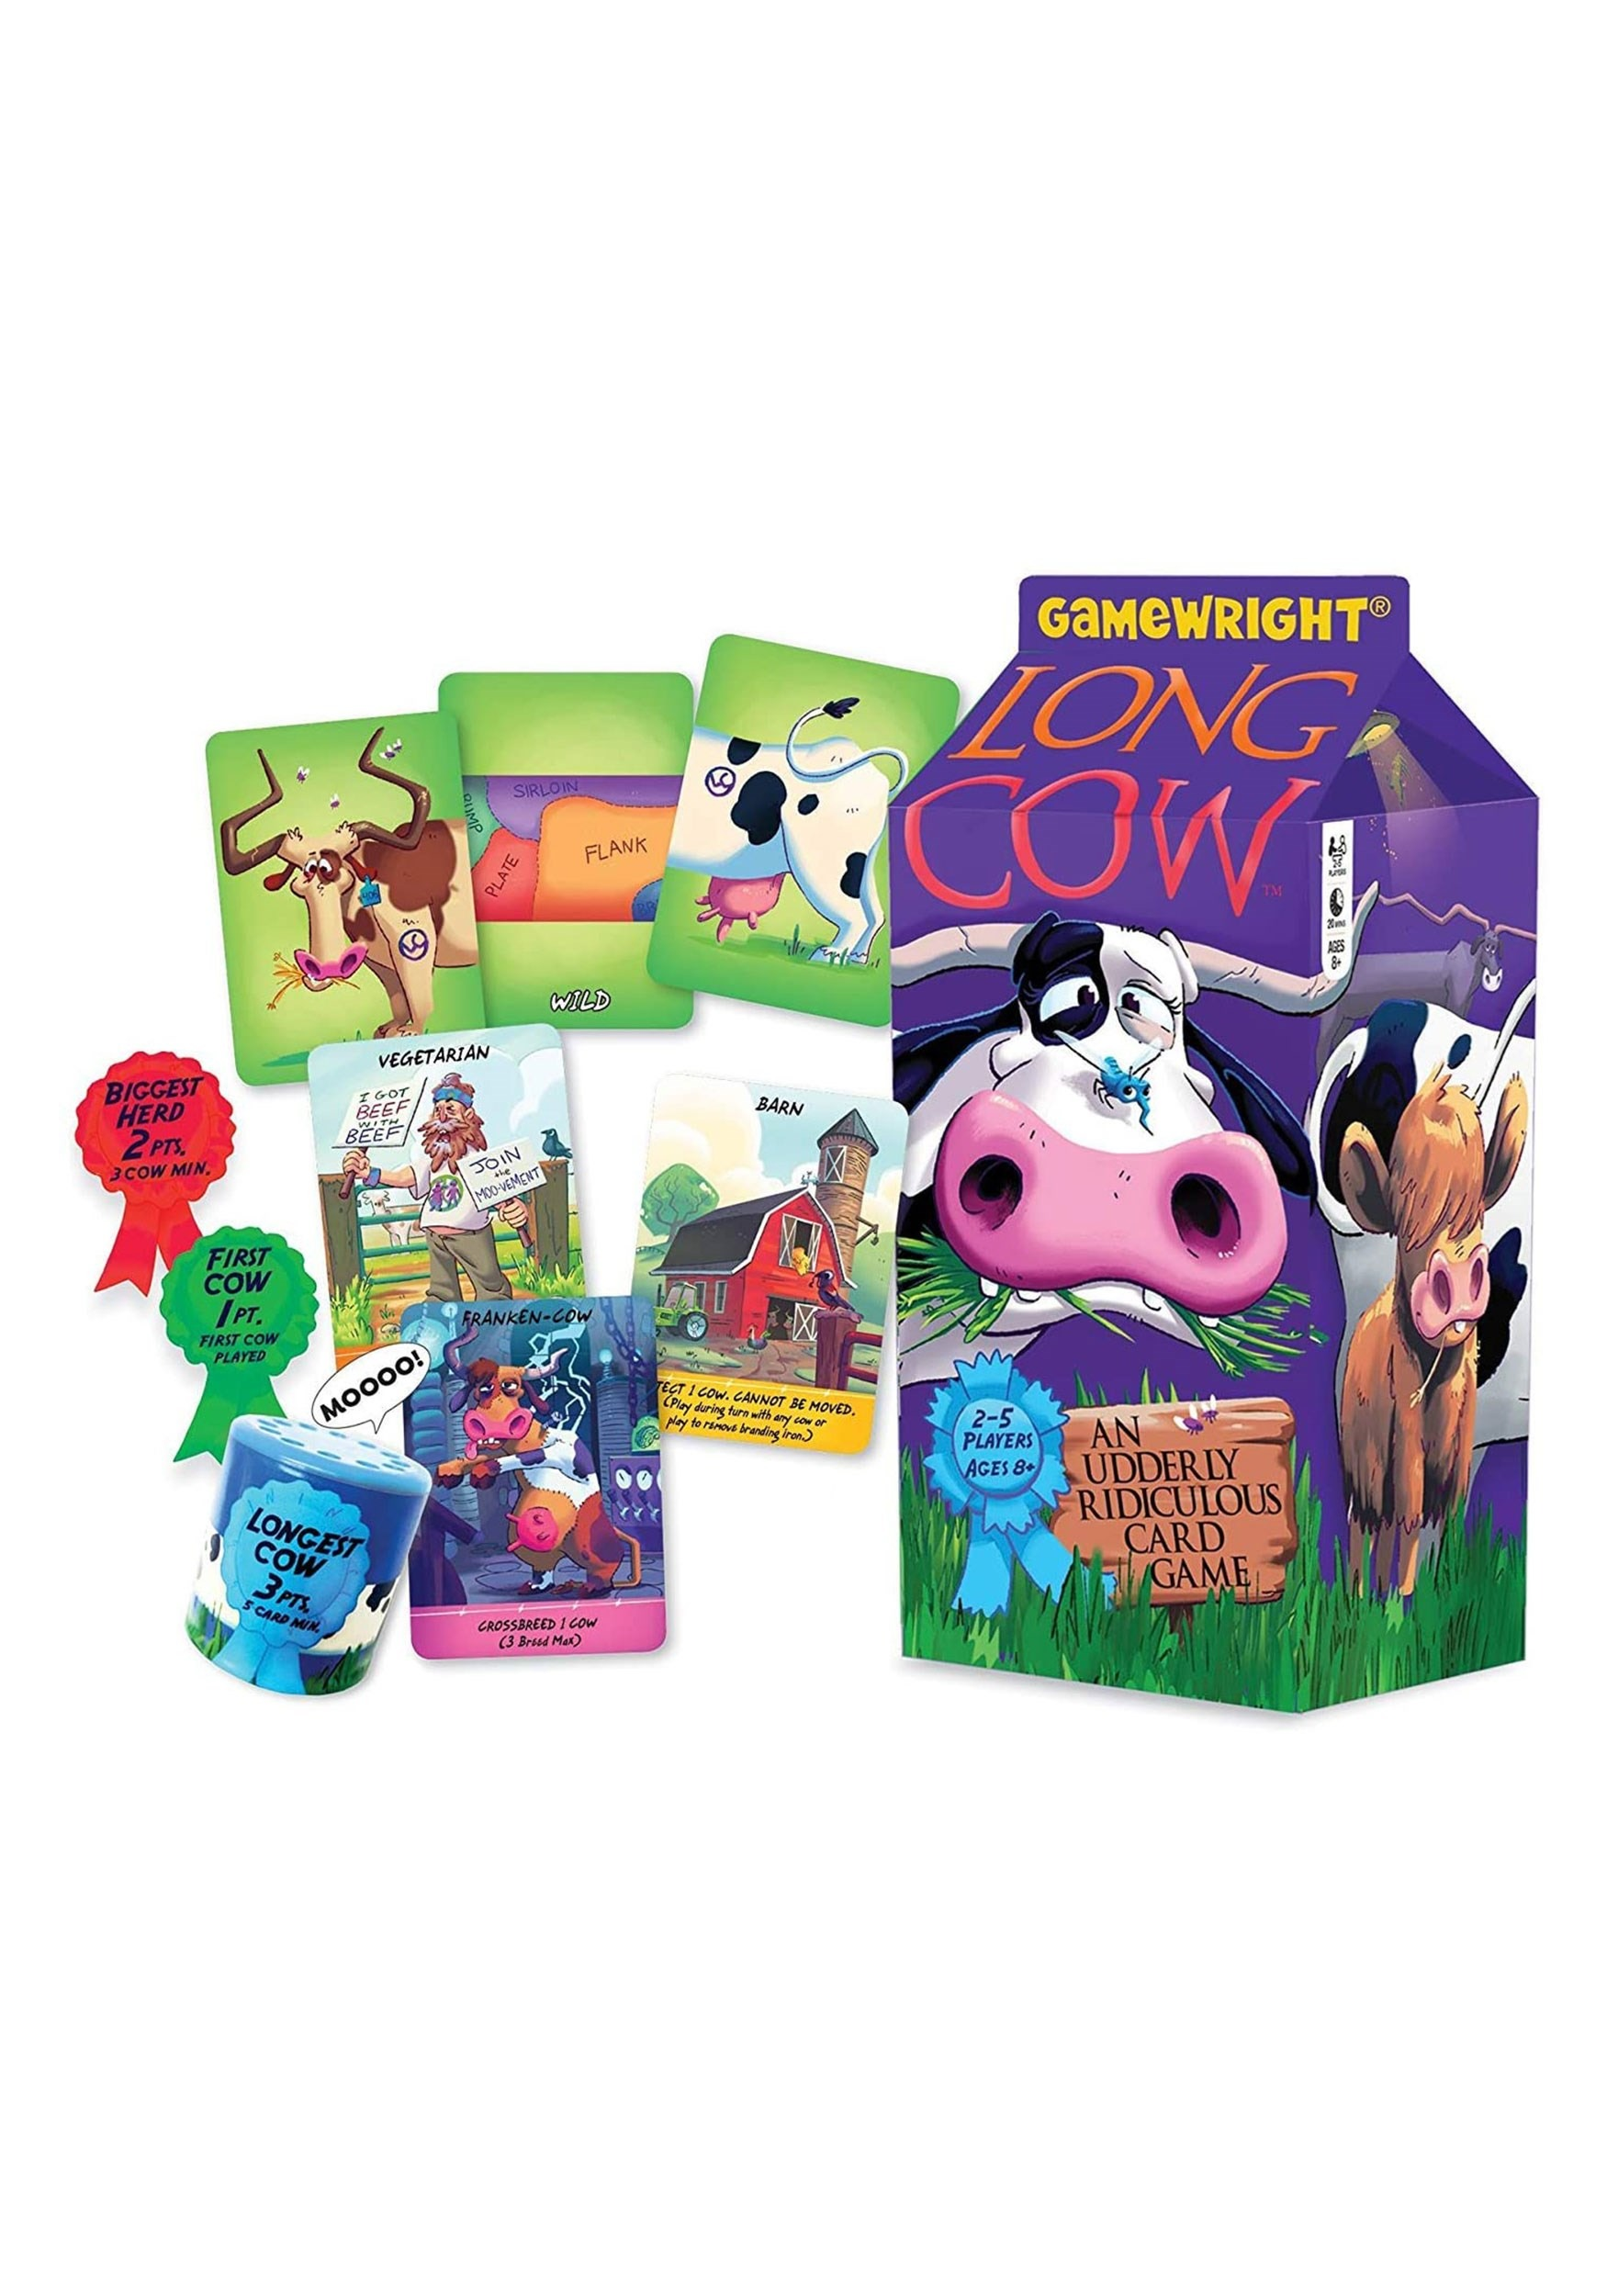 Long Cow: An Udderly Ridiculous Card Game